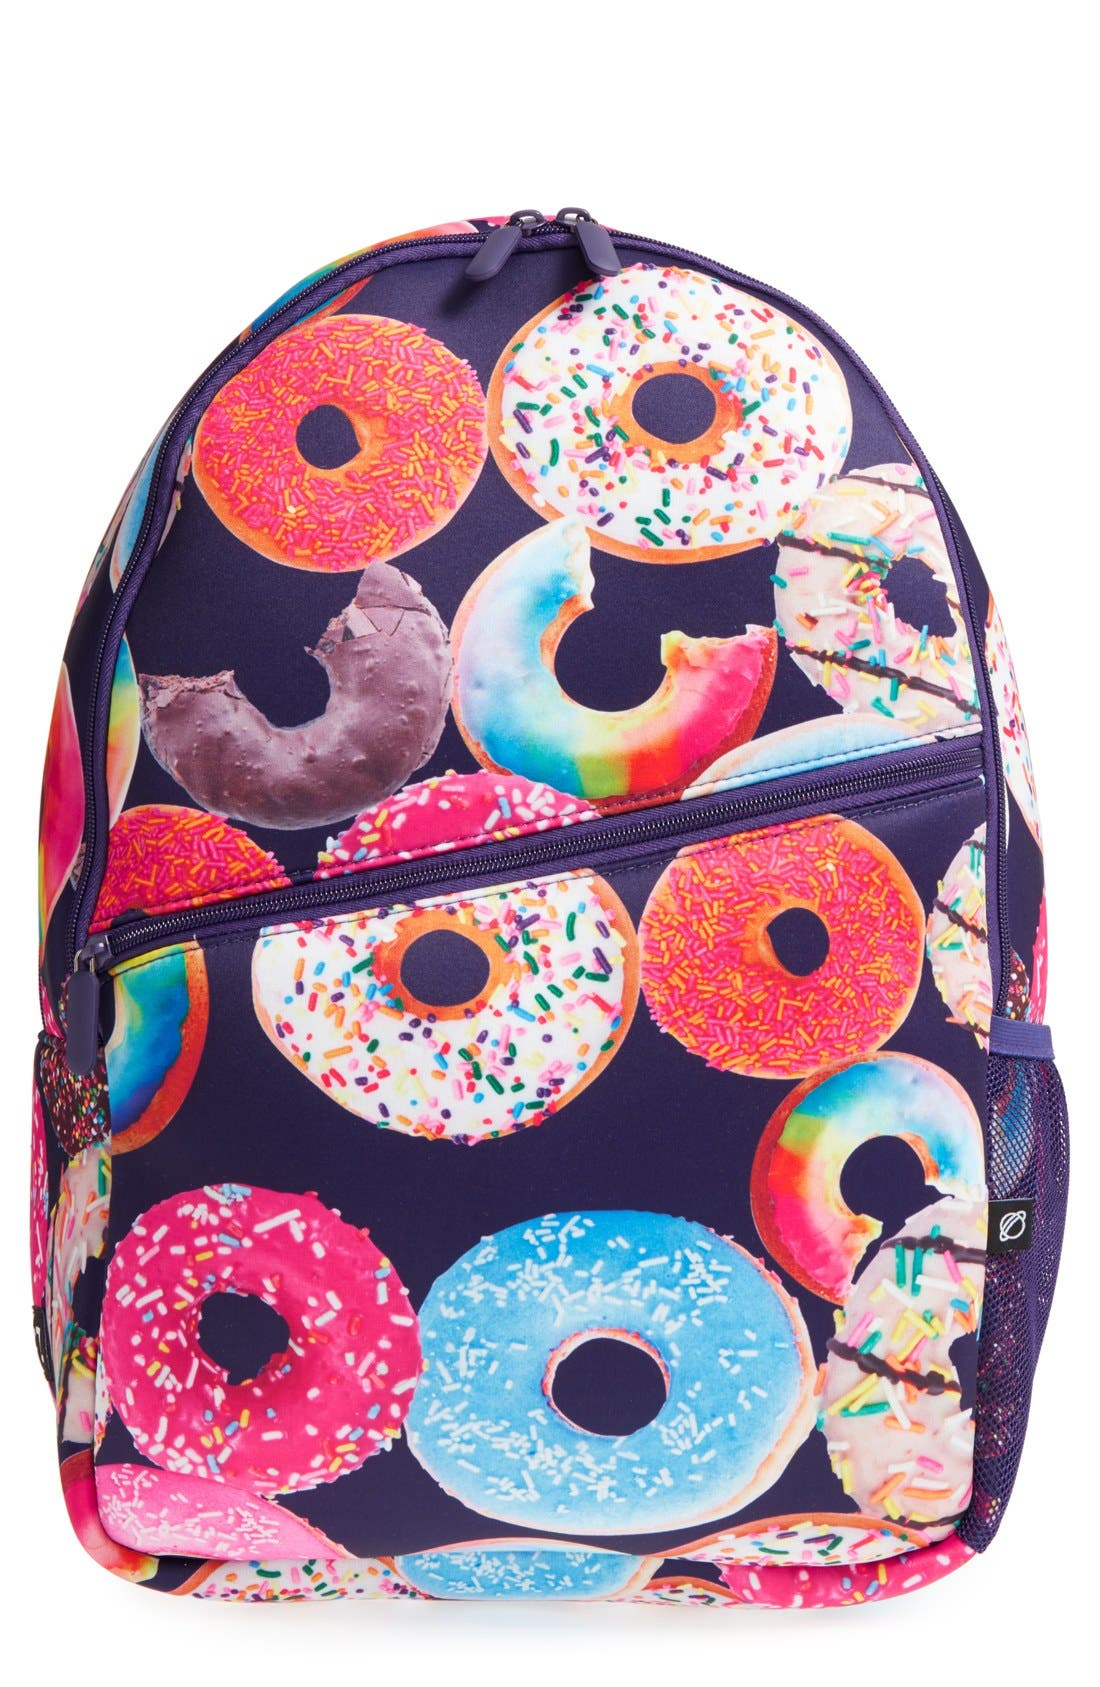 'Donut Shop' Neoprene Backpack,                             Main thumbnail 1, color,                             001